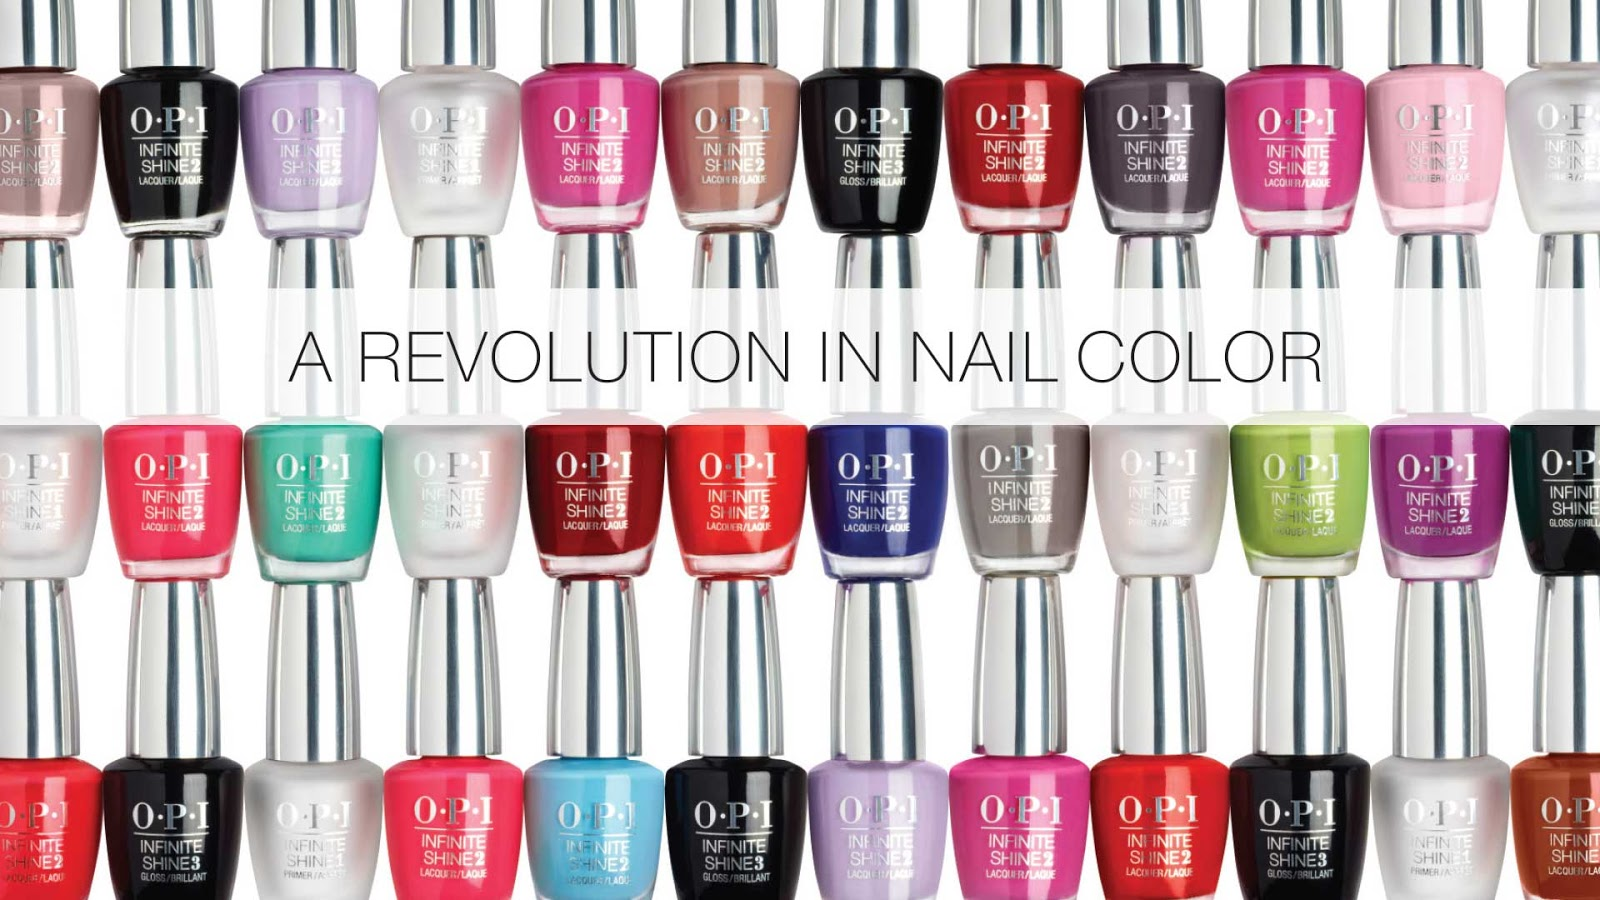 My sweet valentine: A revolution in nail colour: OPI INFINITE SHINE